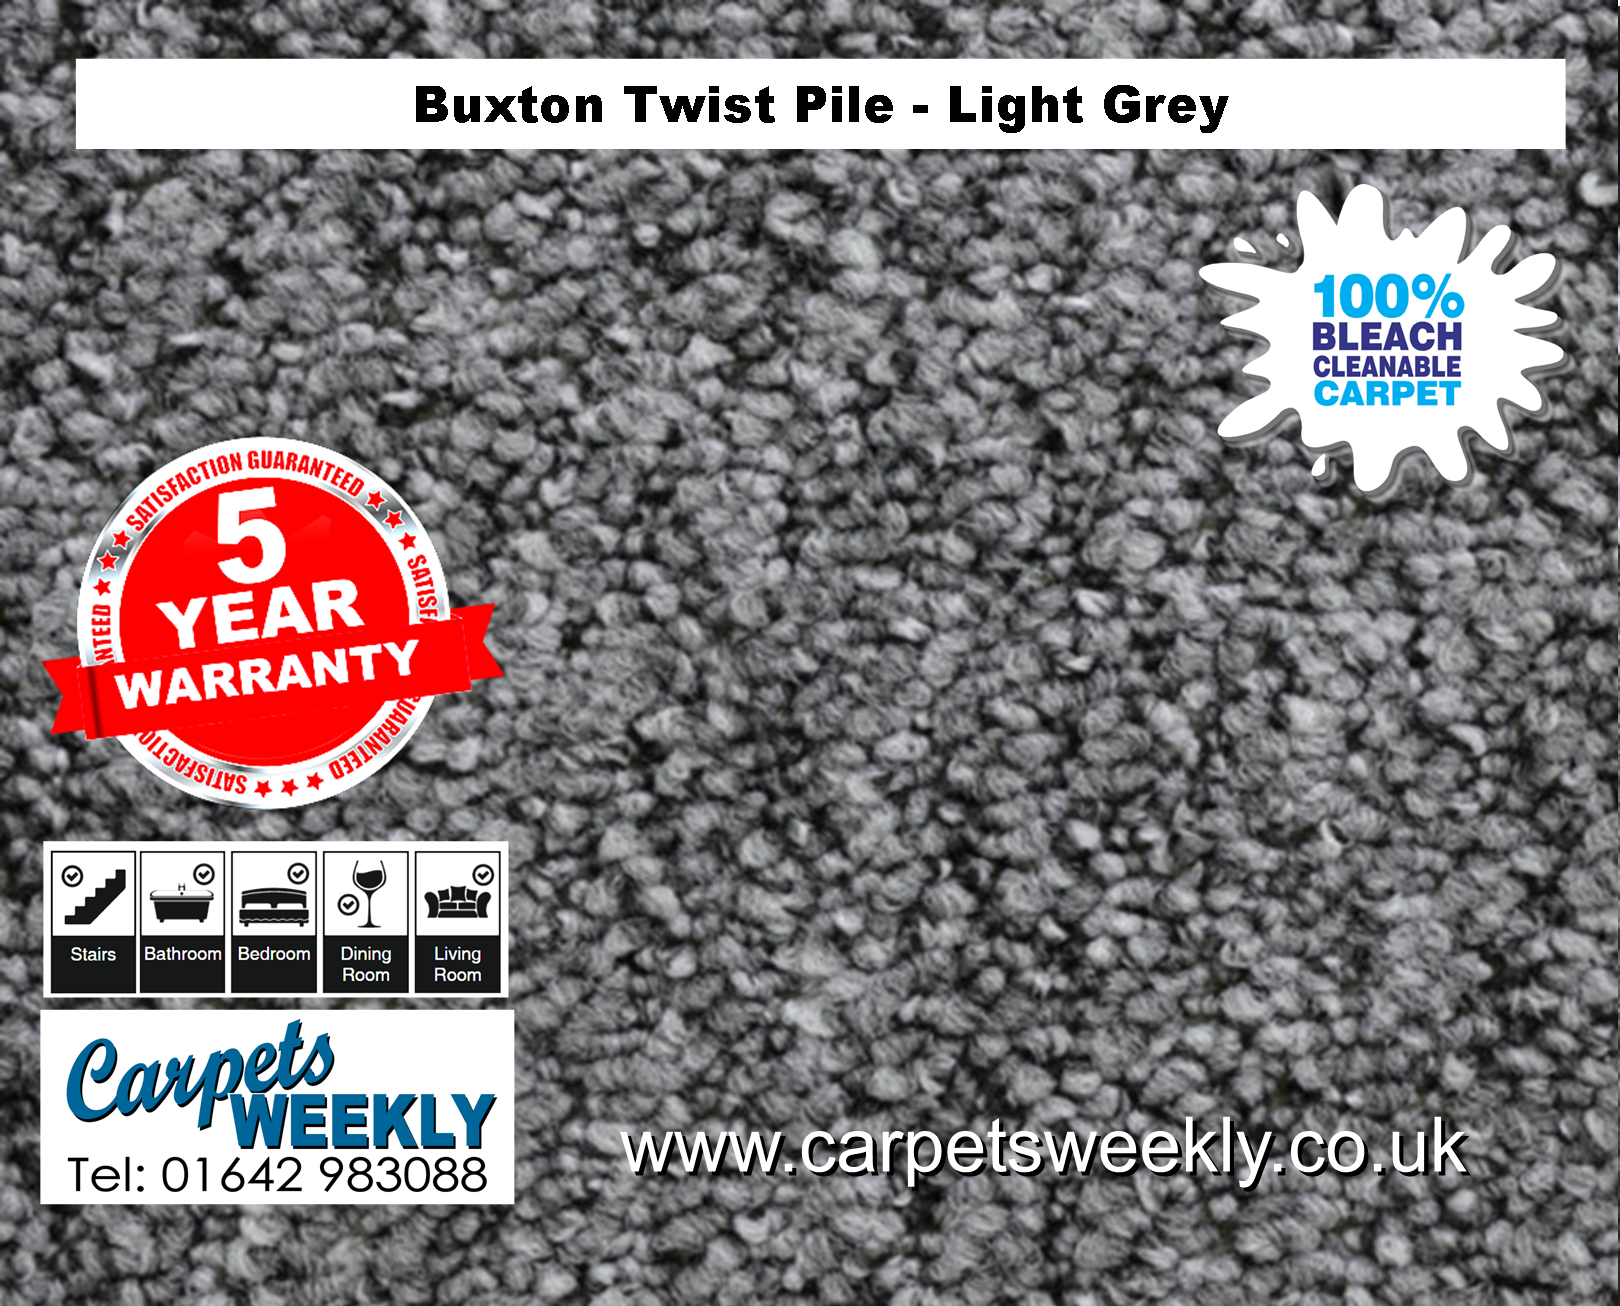 Buxton Monet Twist Pile Carpet Light Grey from Carpets Weekly